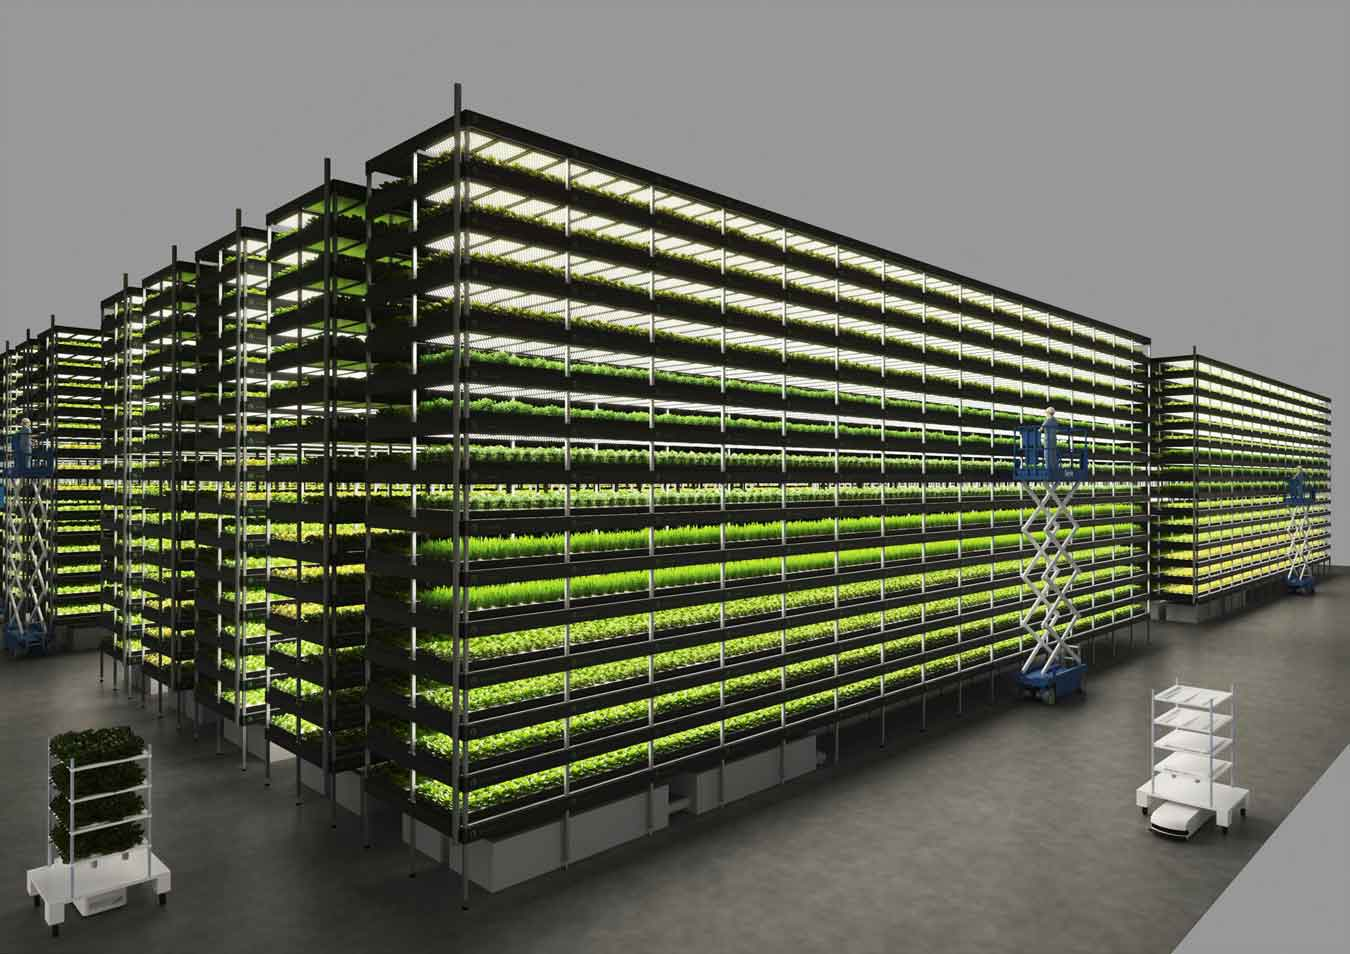 Vertical farms, planet city, Liam Young, sci-arc, short film, sustainable food system, food system, artificial environment, eco friendly solution, architecture, agriculture, sustainable agriculture, farming, sustainable farming, healthy food supply, food supply, local food, food, tech food, Nordic Danish, re wild, crop cultivation, vertical forest, YesHealth Group, LED lighting, microbial fertilisers, hydroponic system, journal science, planting, crops internal clock, self sufficient, self sustained, circular city, greens, micro greens, soil, harvest